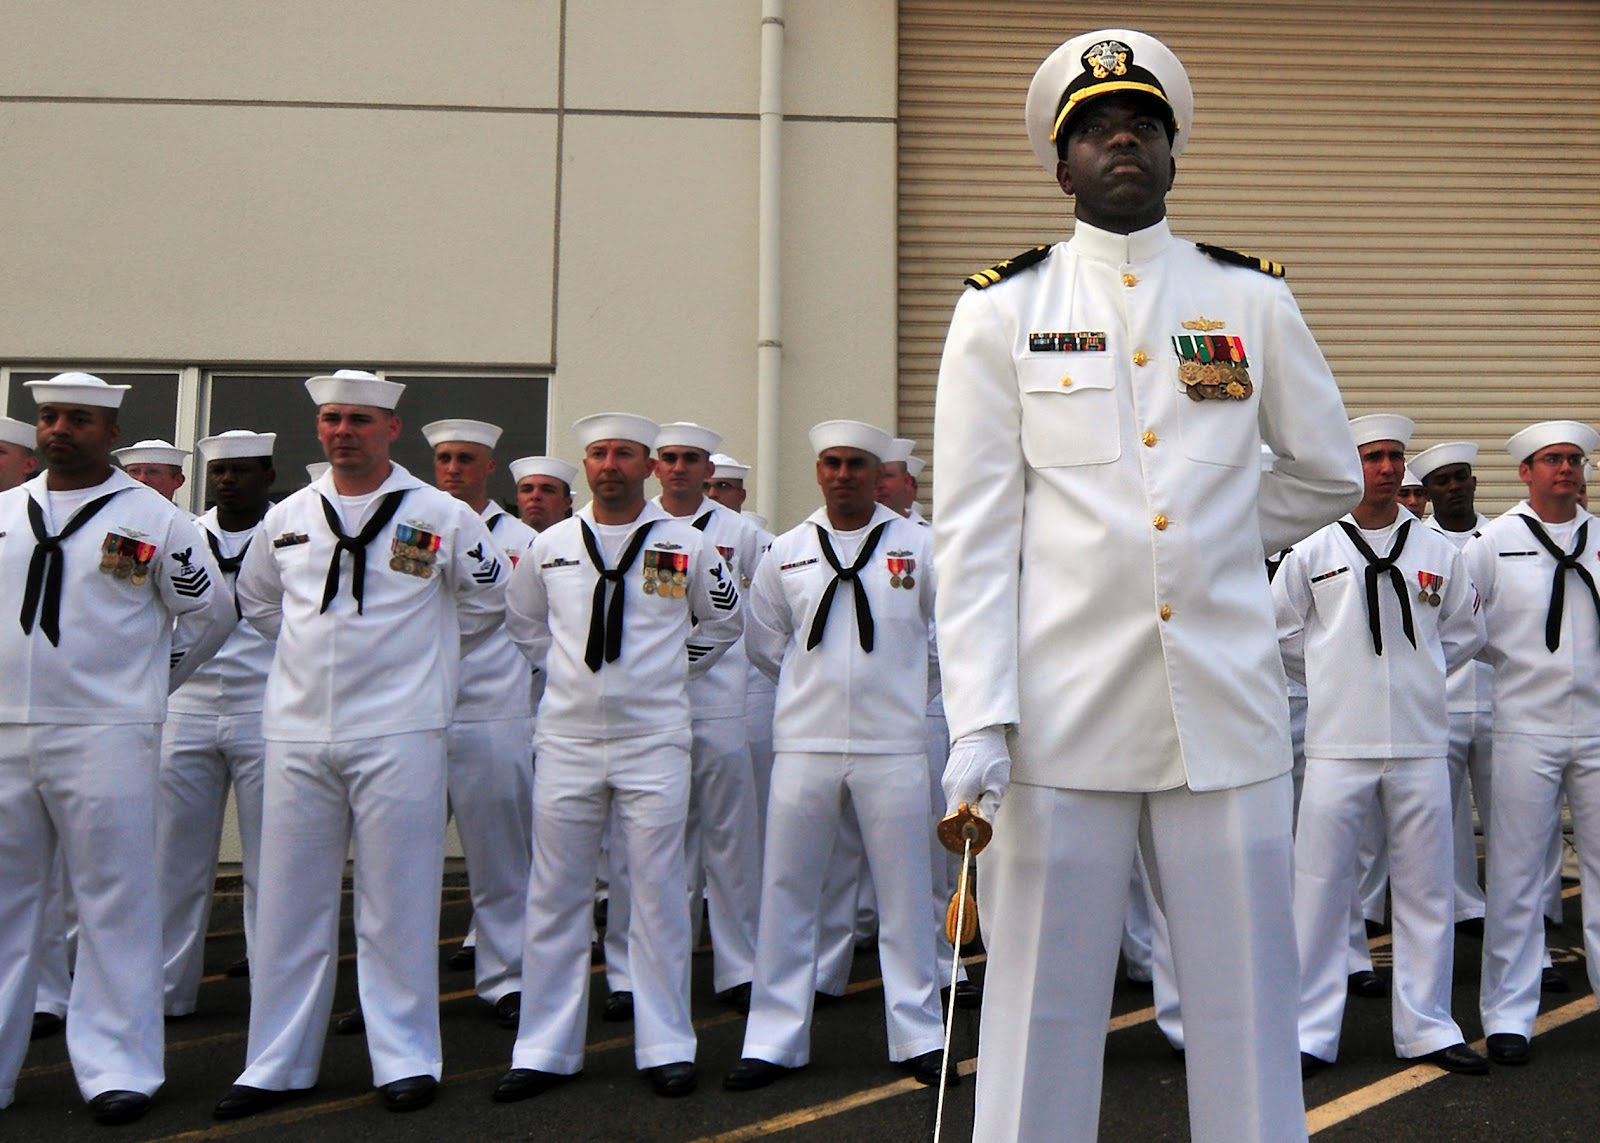 Navy and Novels: Officer and Enlisted Uniforms